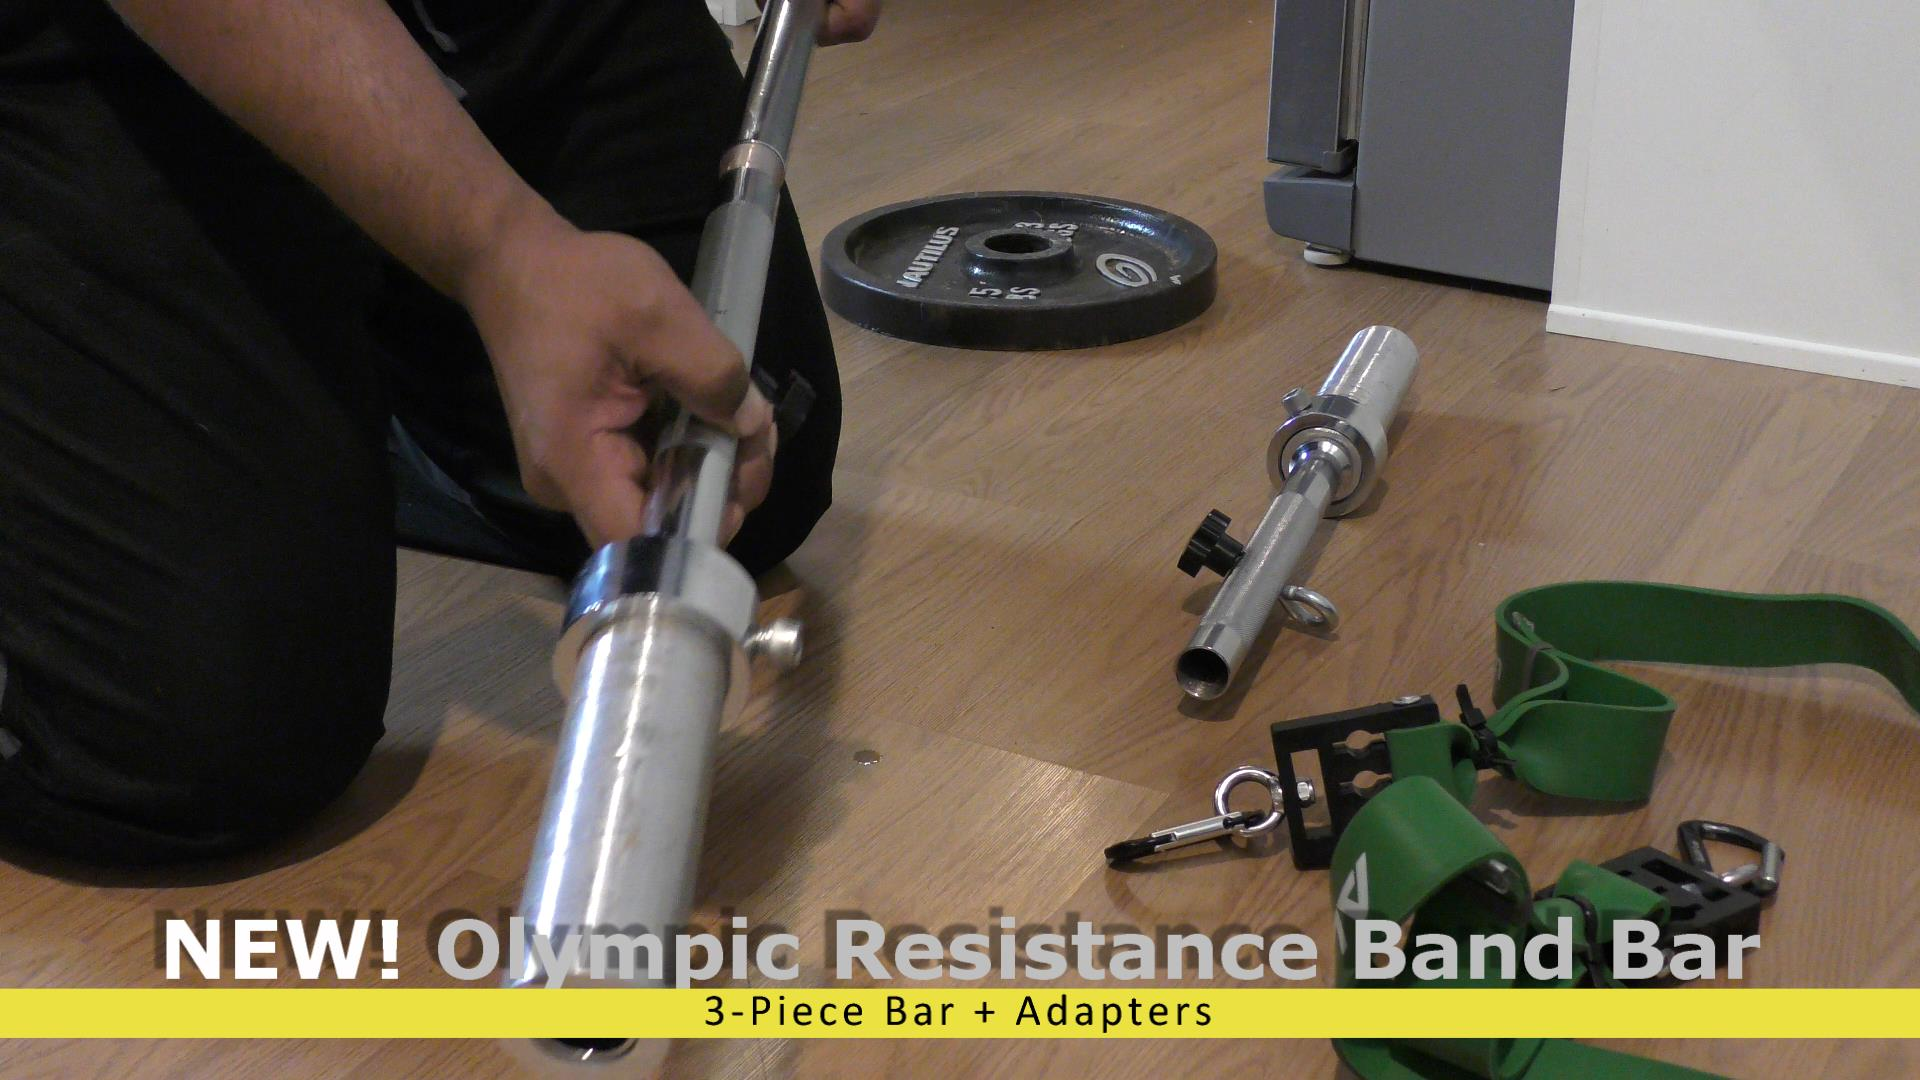 Olympic Sleeve & Resistance Band Barbell Adapters